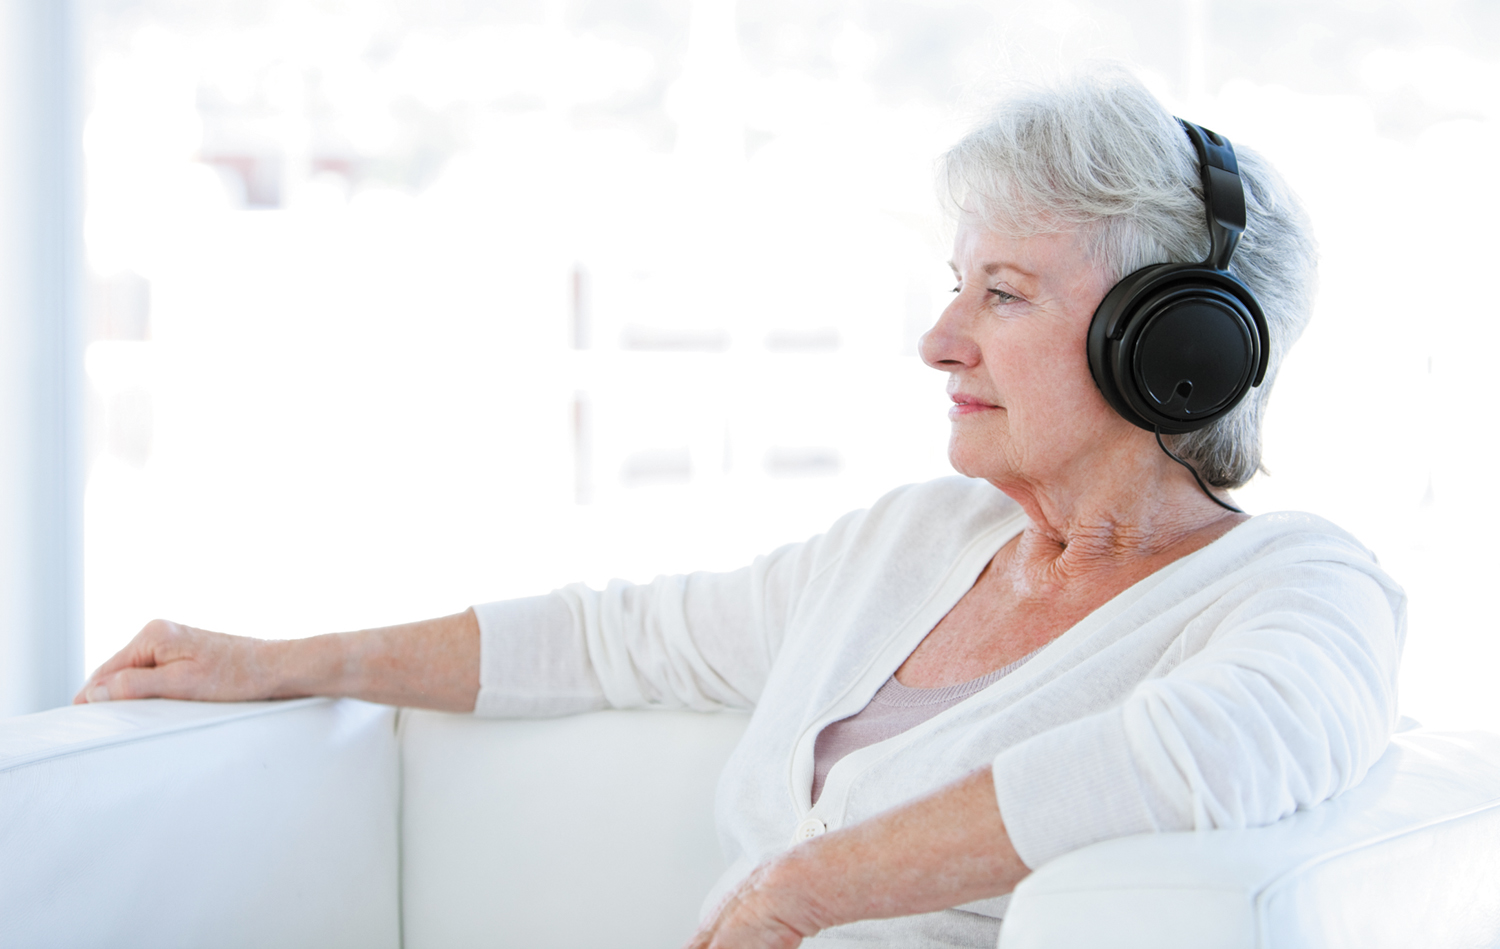 how music can help you heal harvard health music therapy can calm anxiety ease pain and provide a pleasant diversion during chemotherapy or a hospital stay